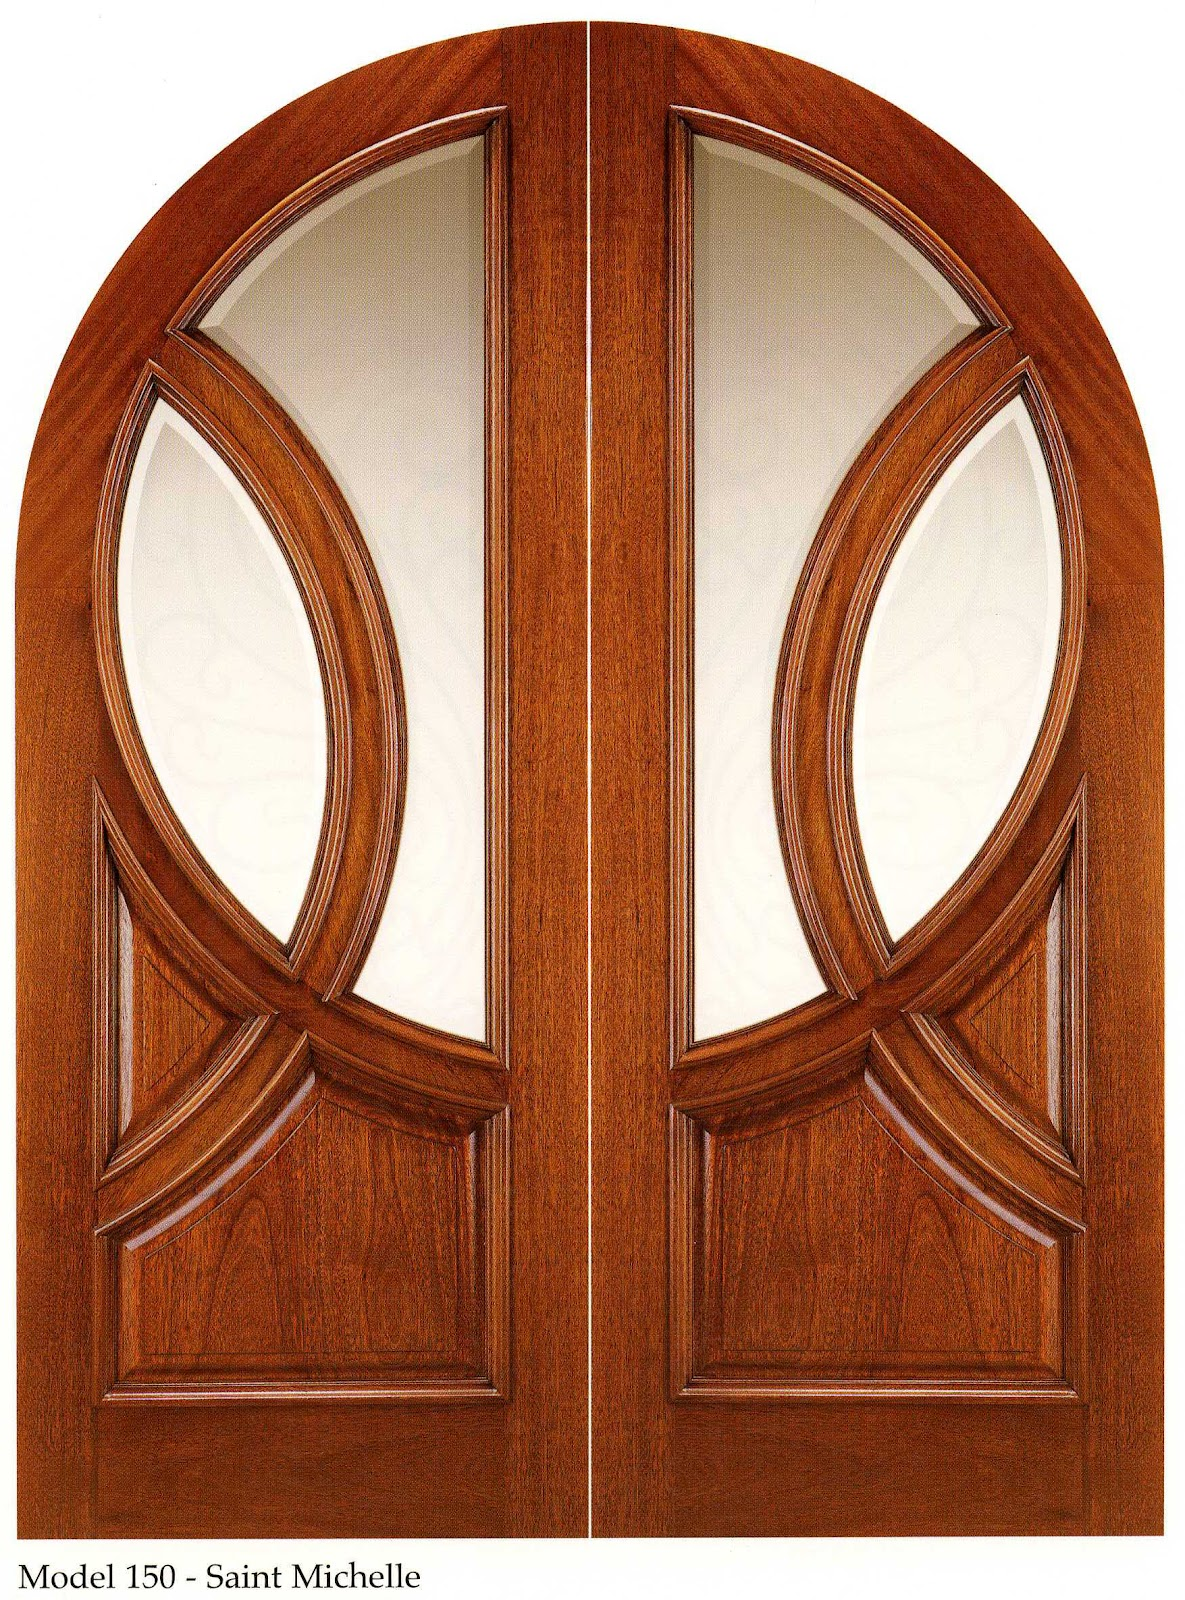 1600 #AE501A Cheap Entry Doors For Home Glazed Pairs Cheap Entry Doors save image Affordable Exterior Doors 38871185